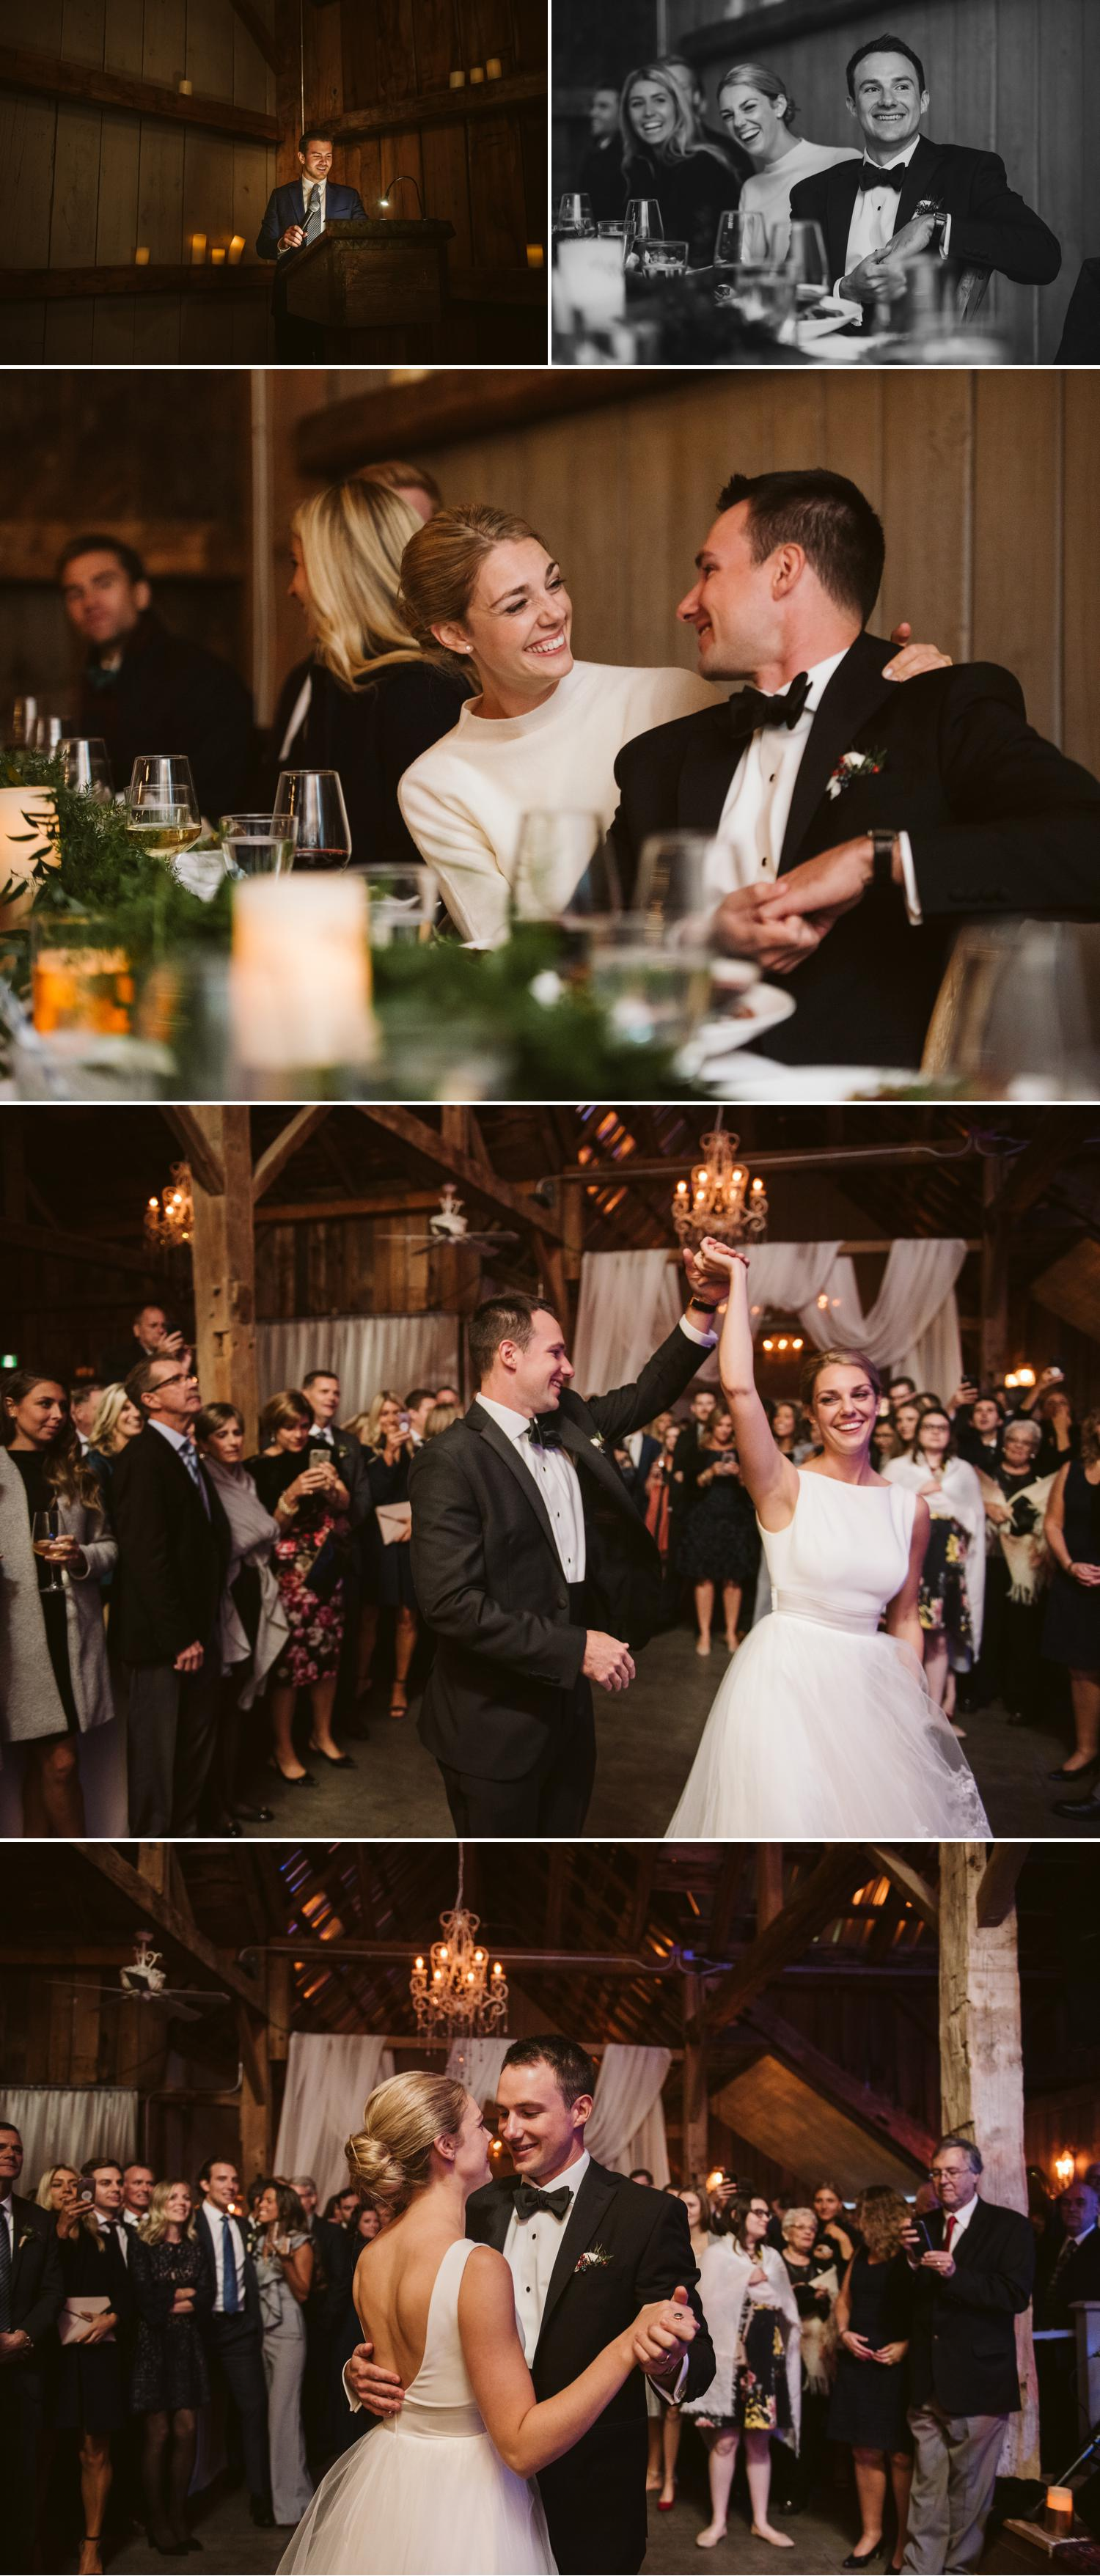 Wedding Reception at evermore events